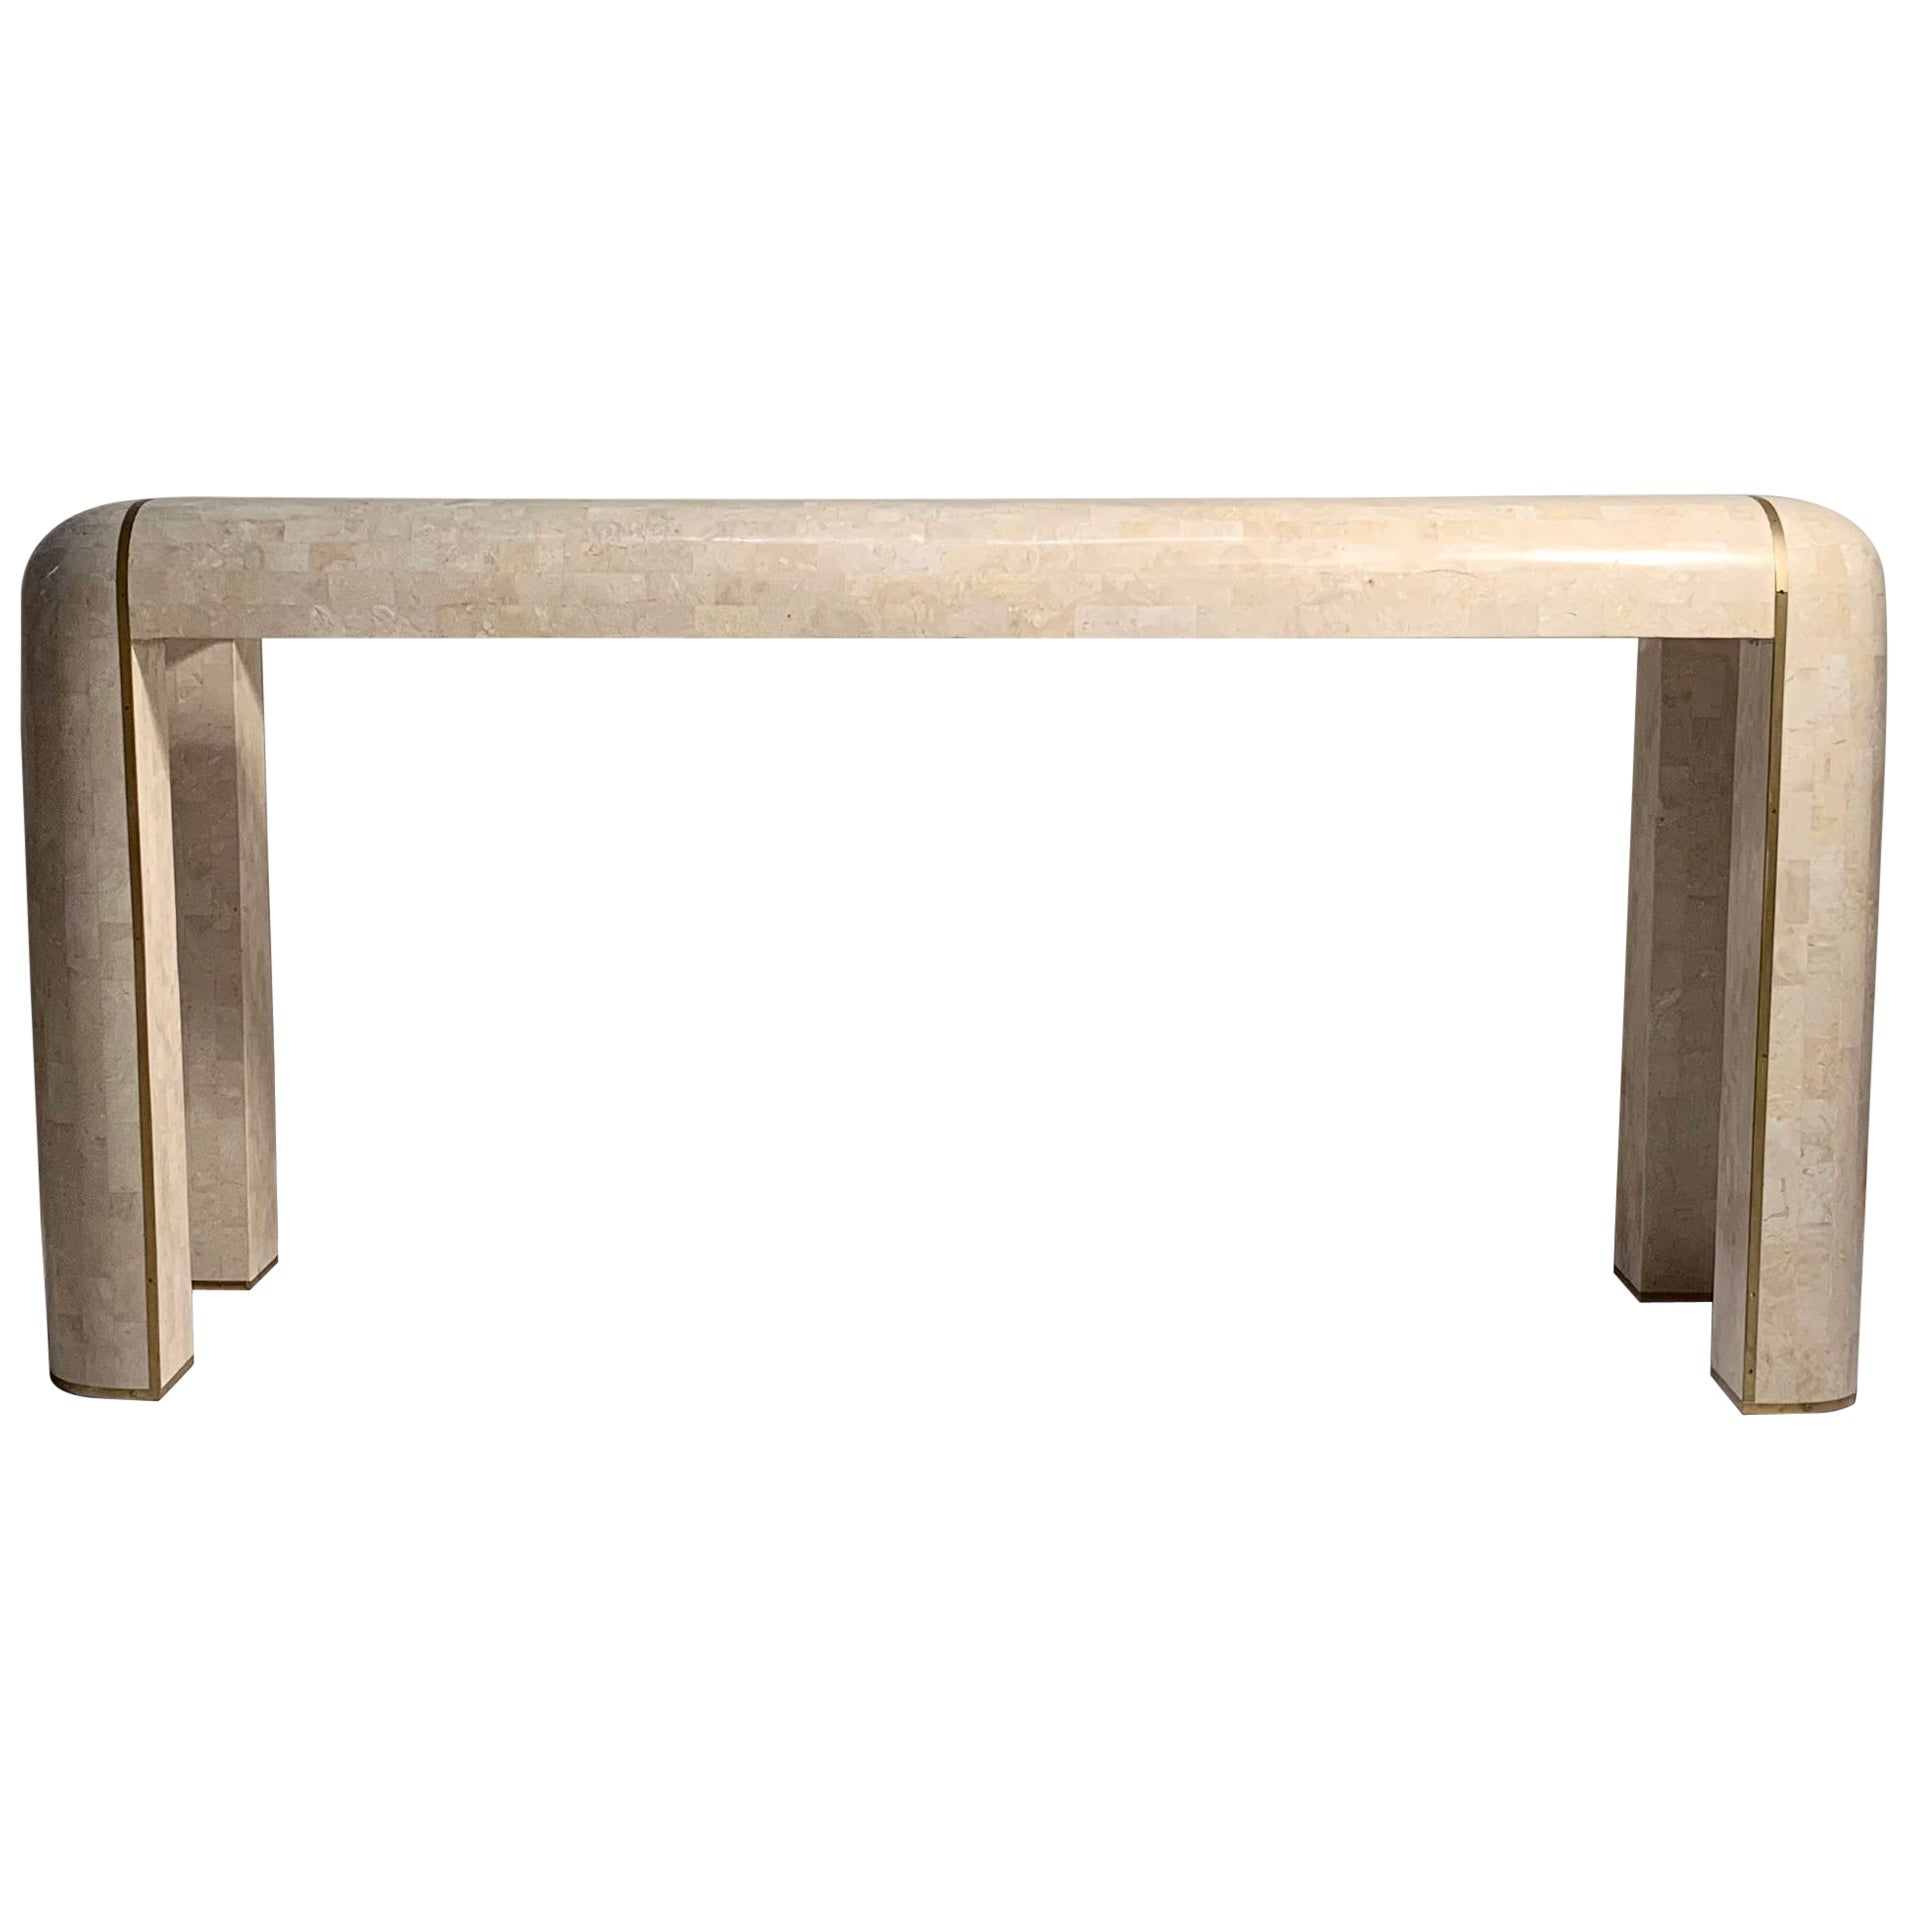 Maitland-Smith Console Tessellated Fossil Mosaic Stone Marble Console Table